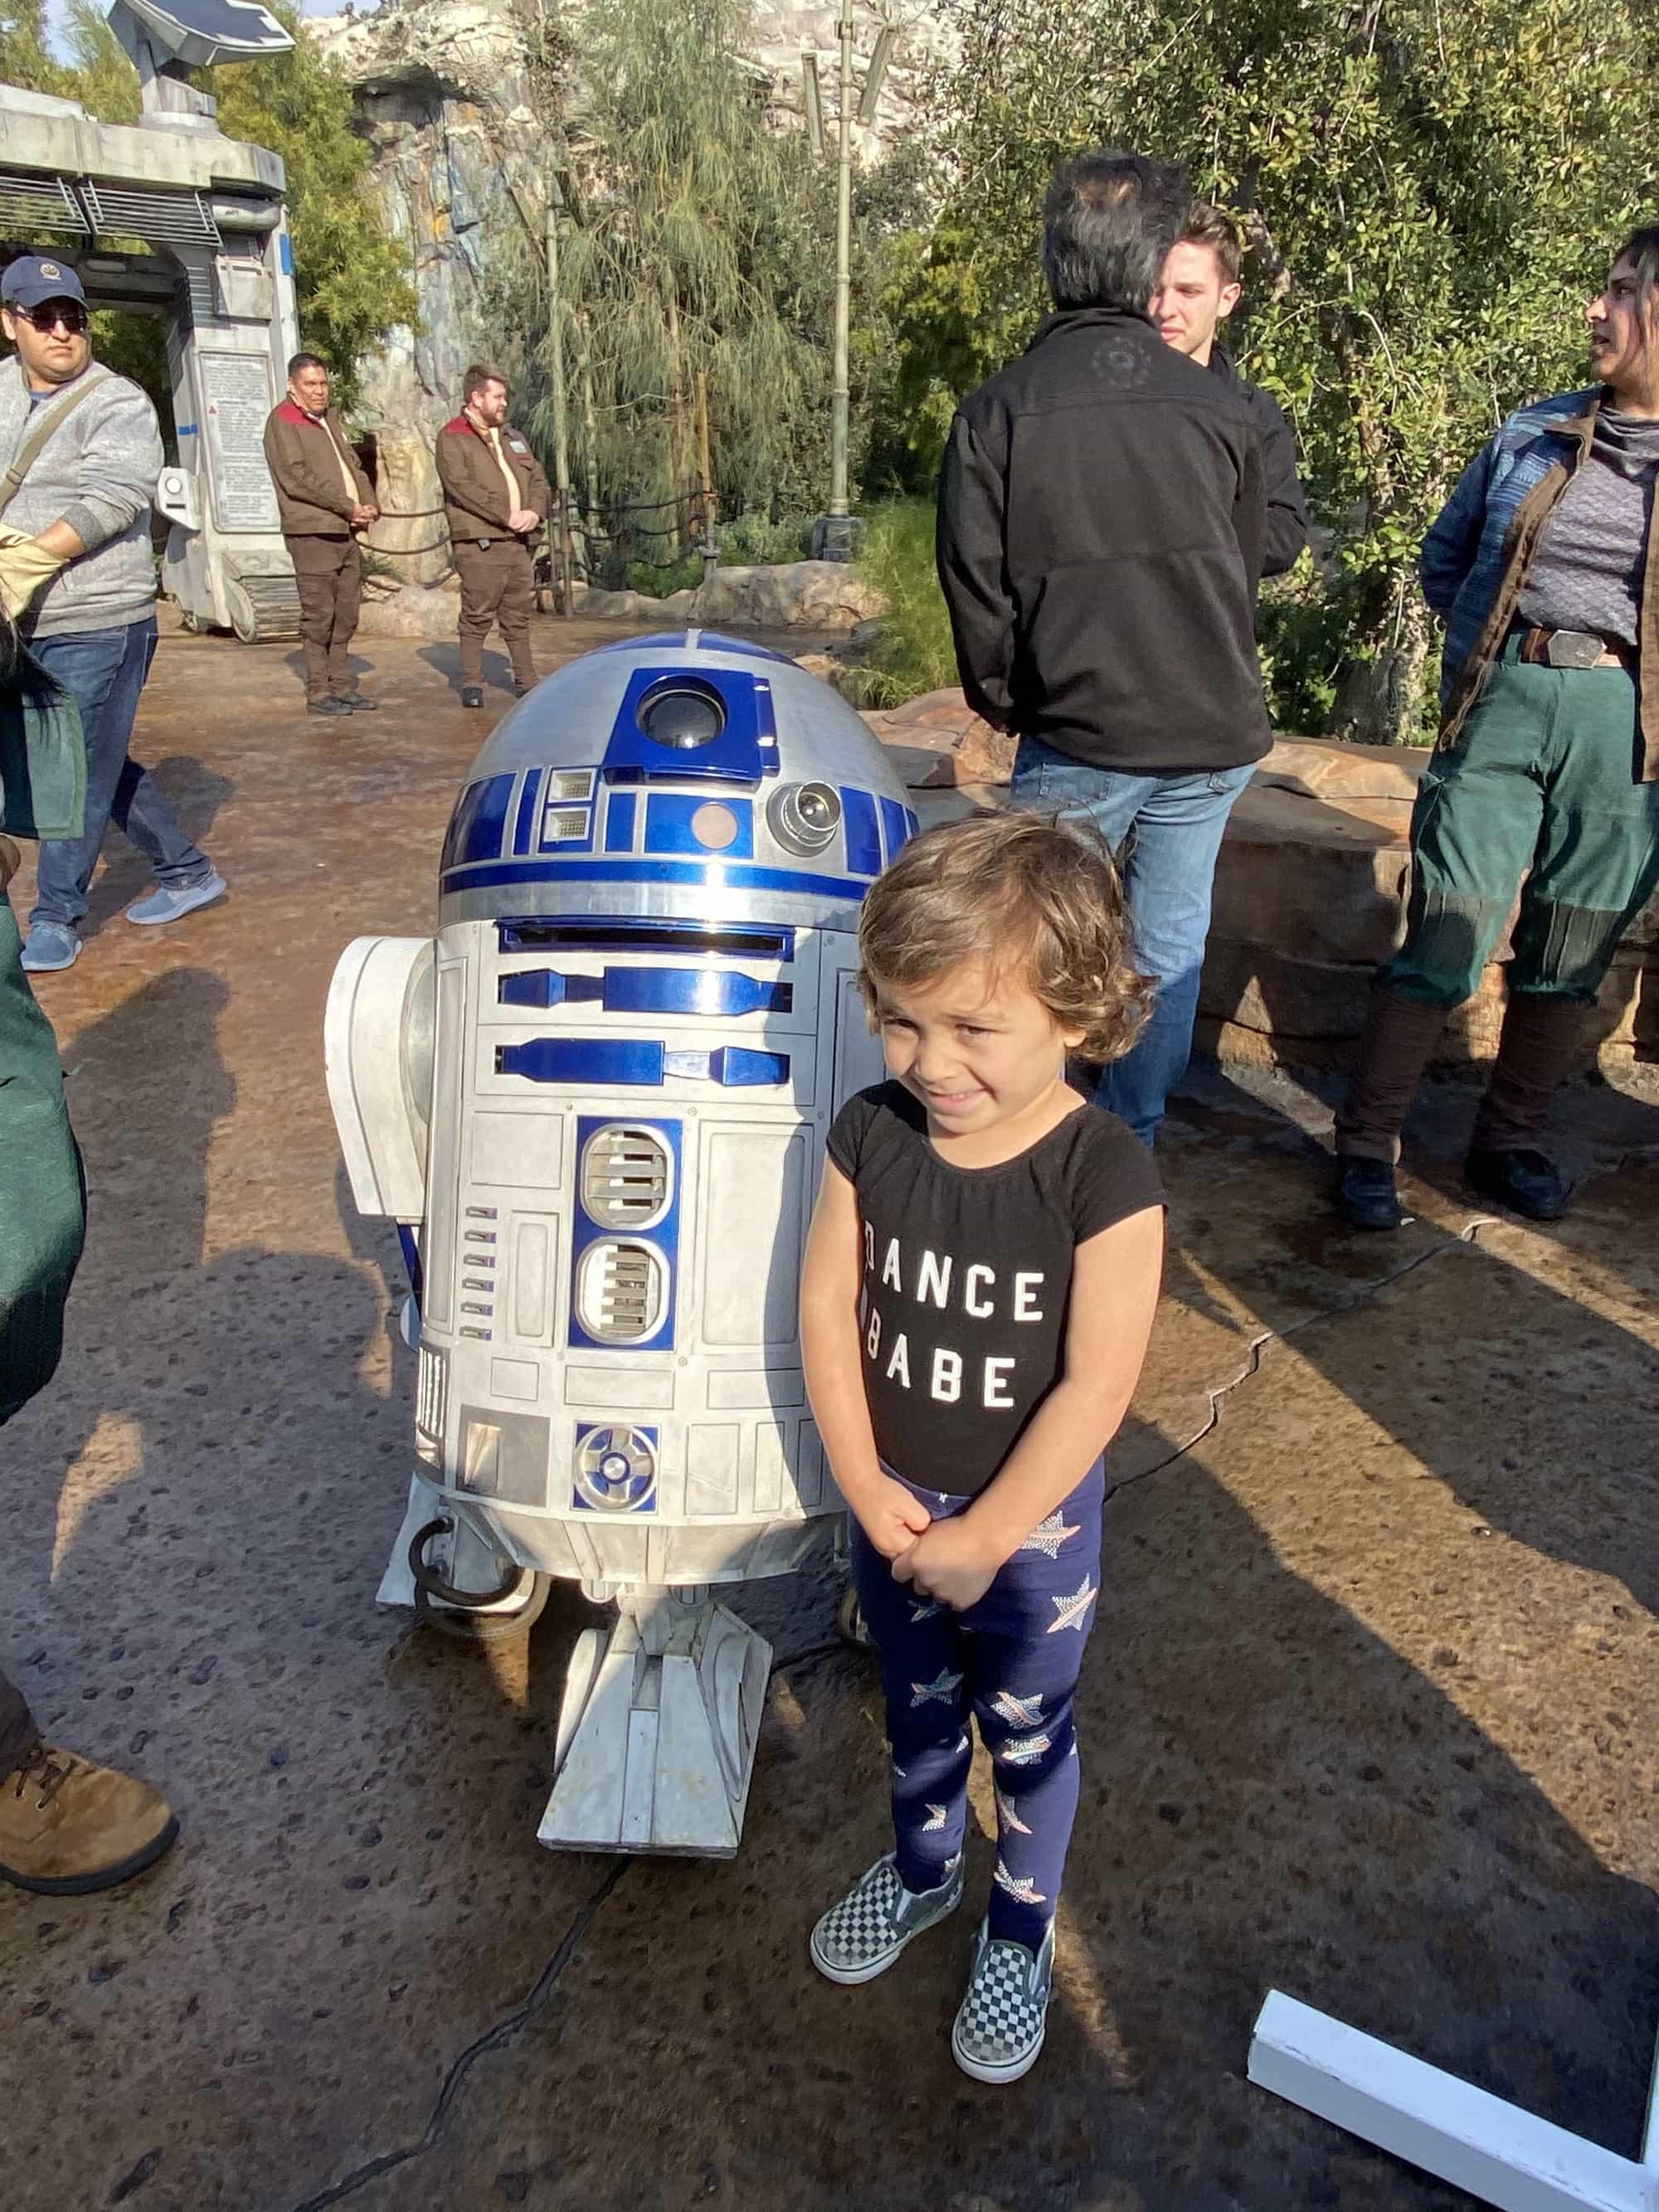 child with r2-d2 star wars